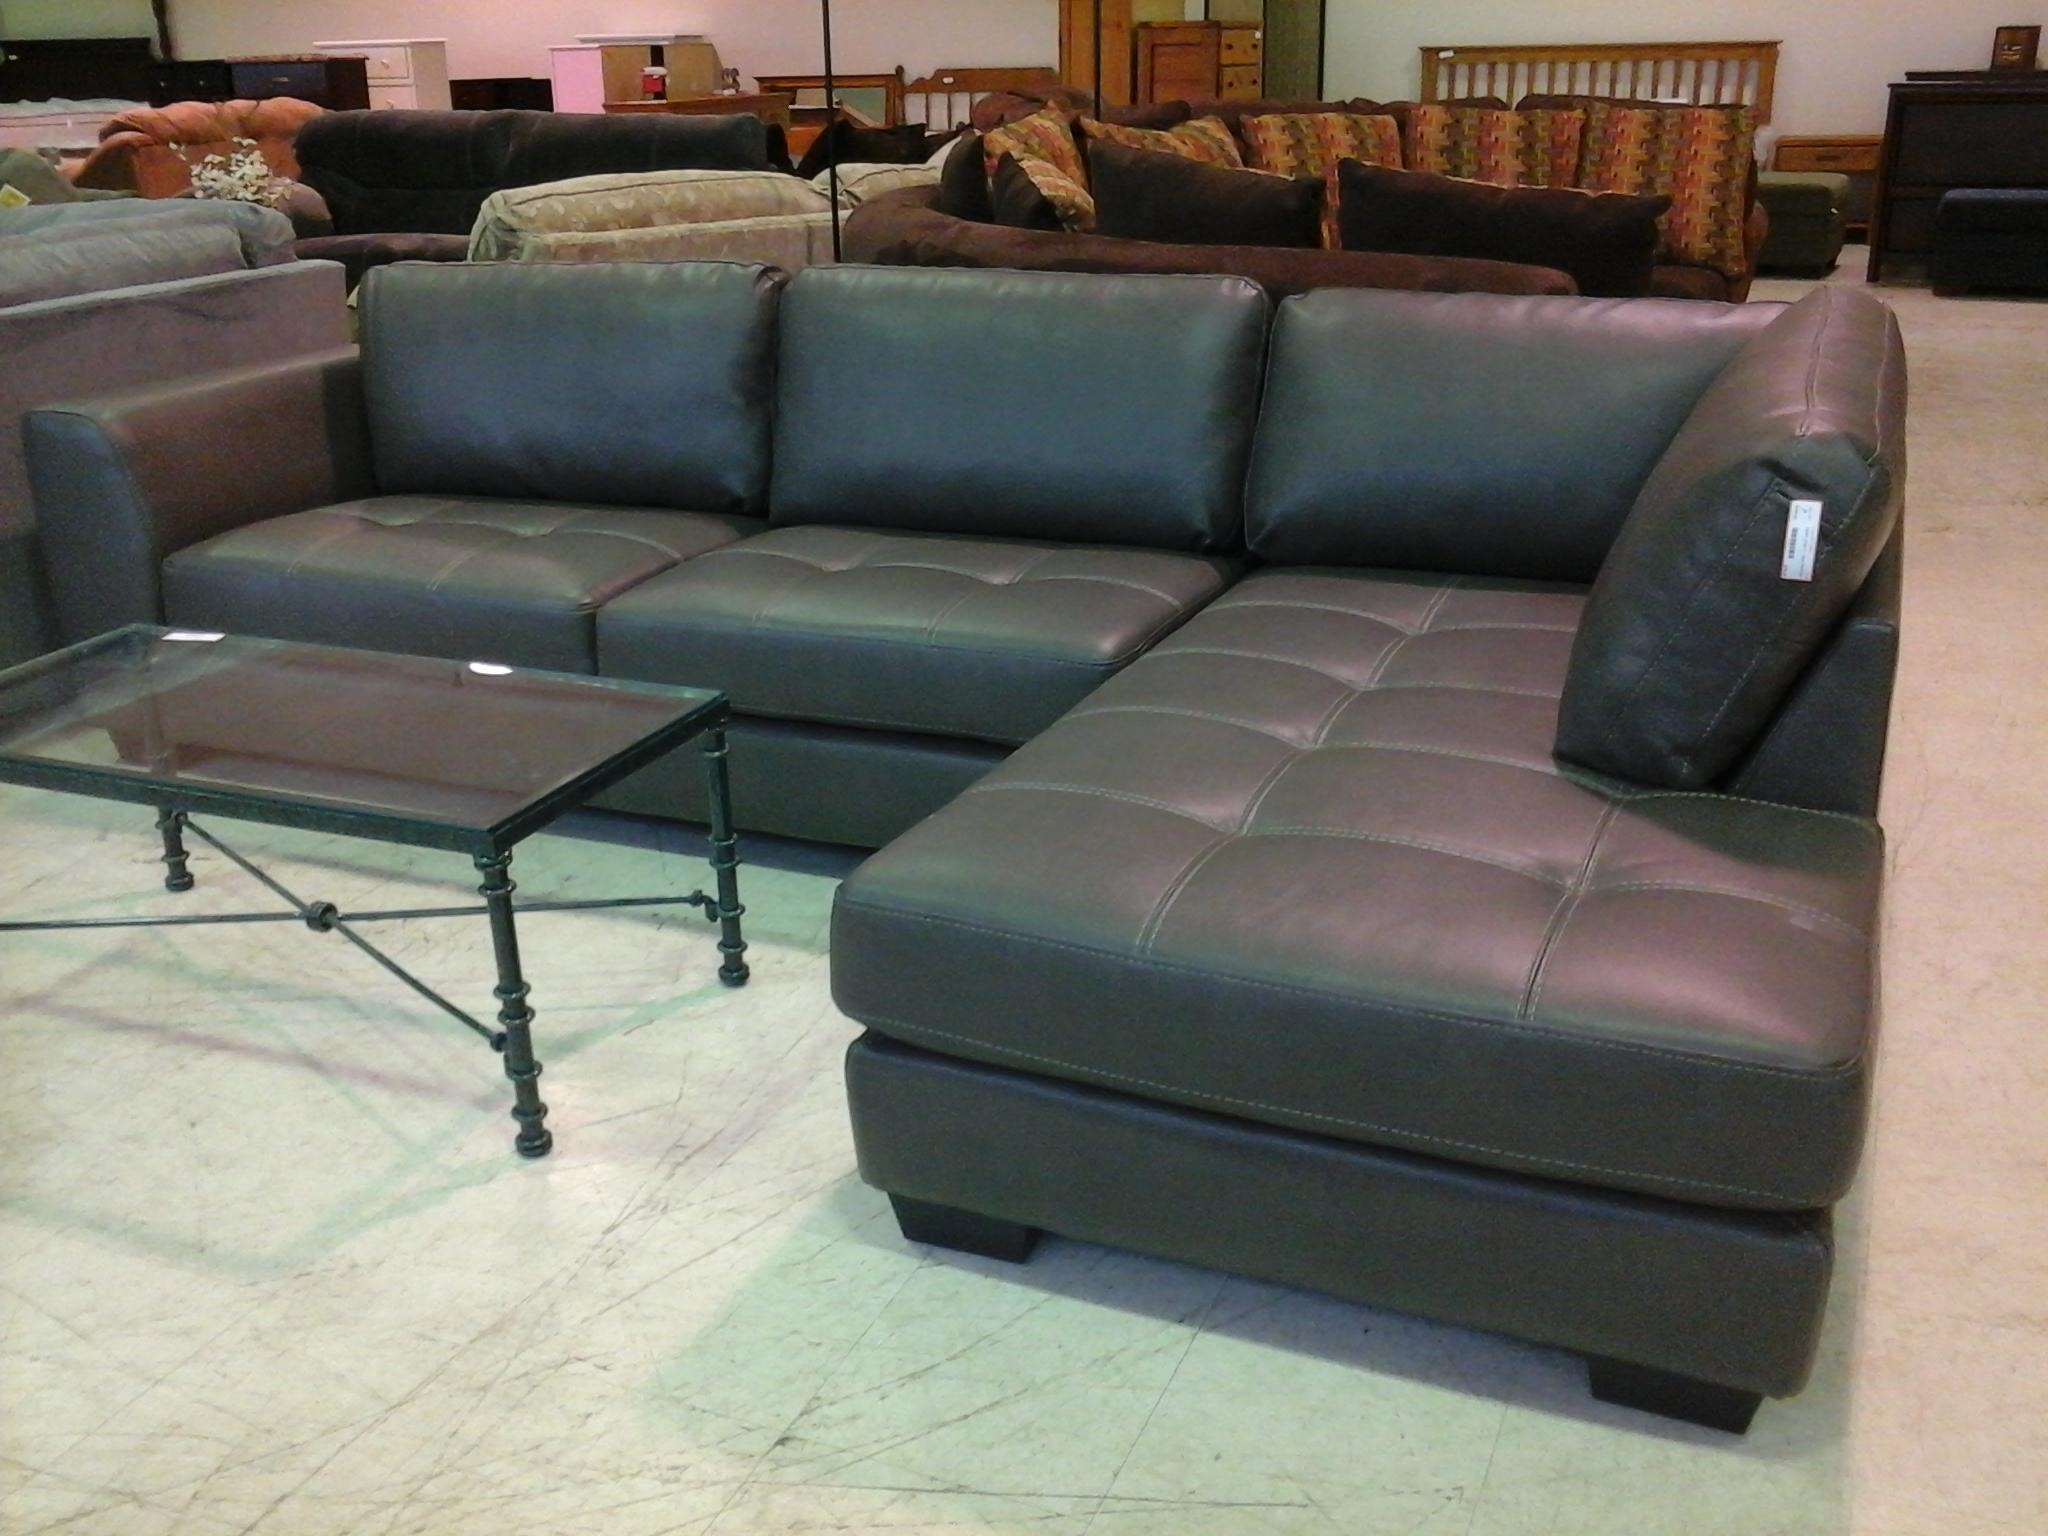 Charcoal Gray Leather Sectional Sofa | Tehranmix Decoration Inside Charcoal Gray Sectional Sofas (Image 1 of 20)